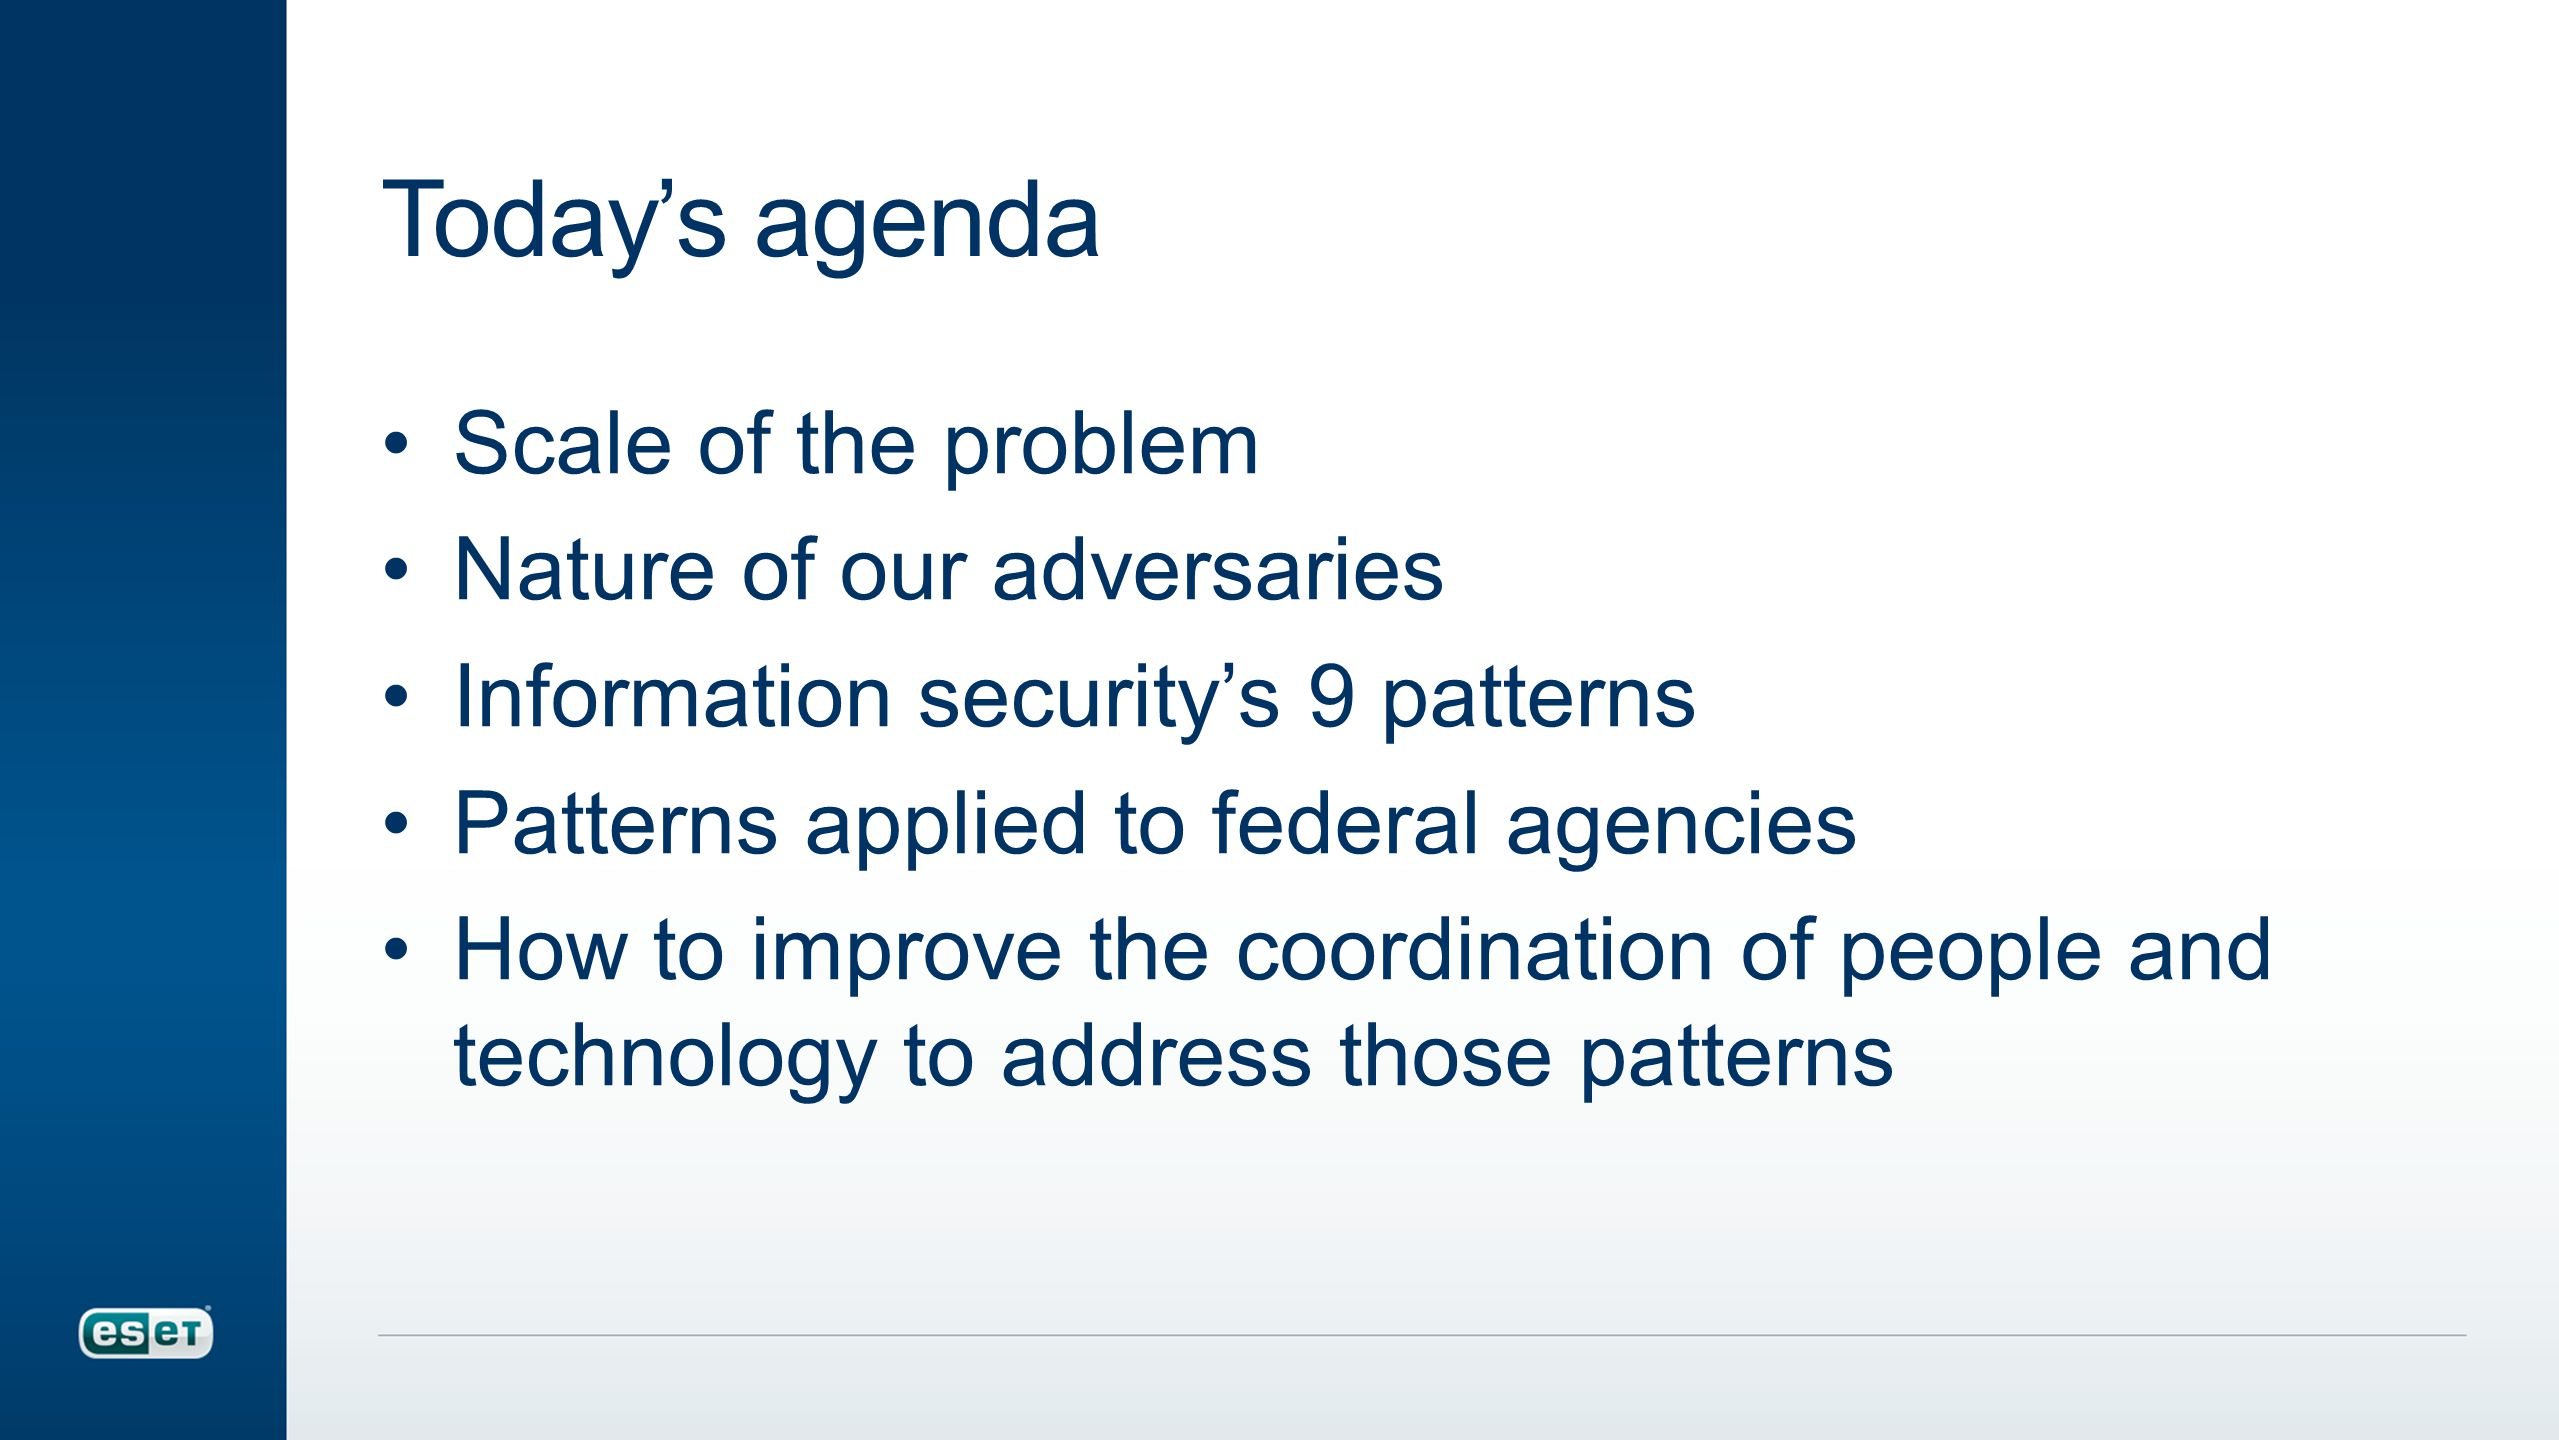 Today's agenda Scale of the problem Nature of our adversaries Information security's 9 patterns Patterns applied to federal agencies How to improve the coordination of people and technology to address those patterns